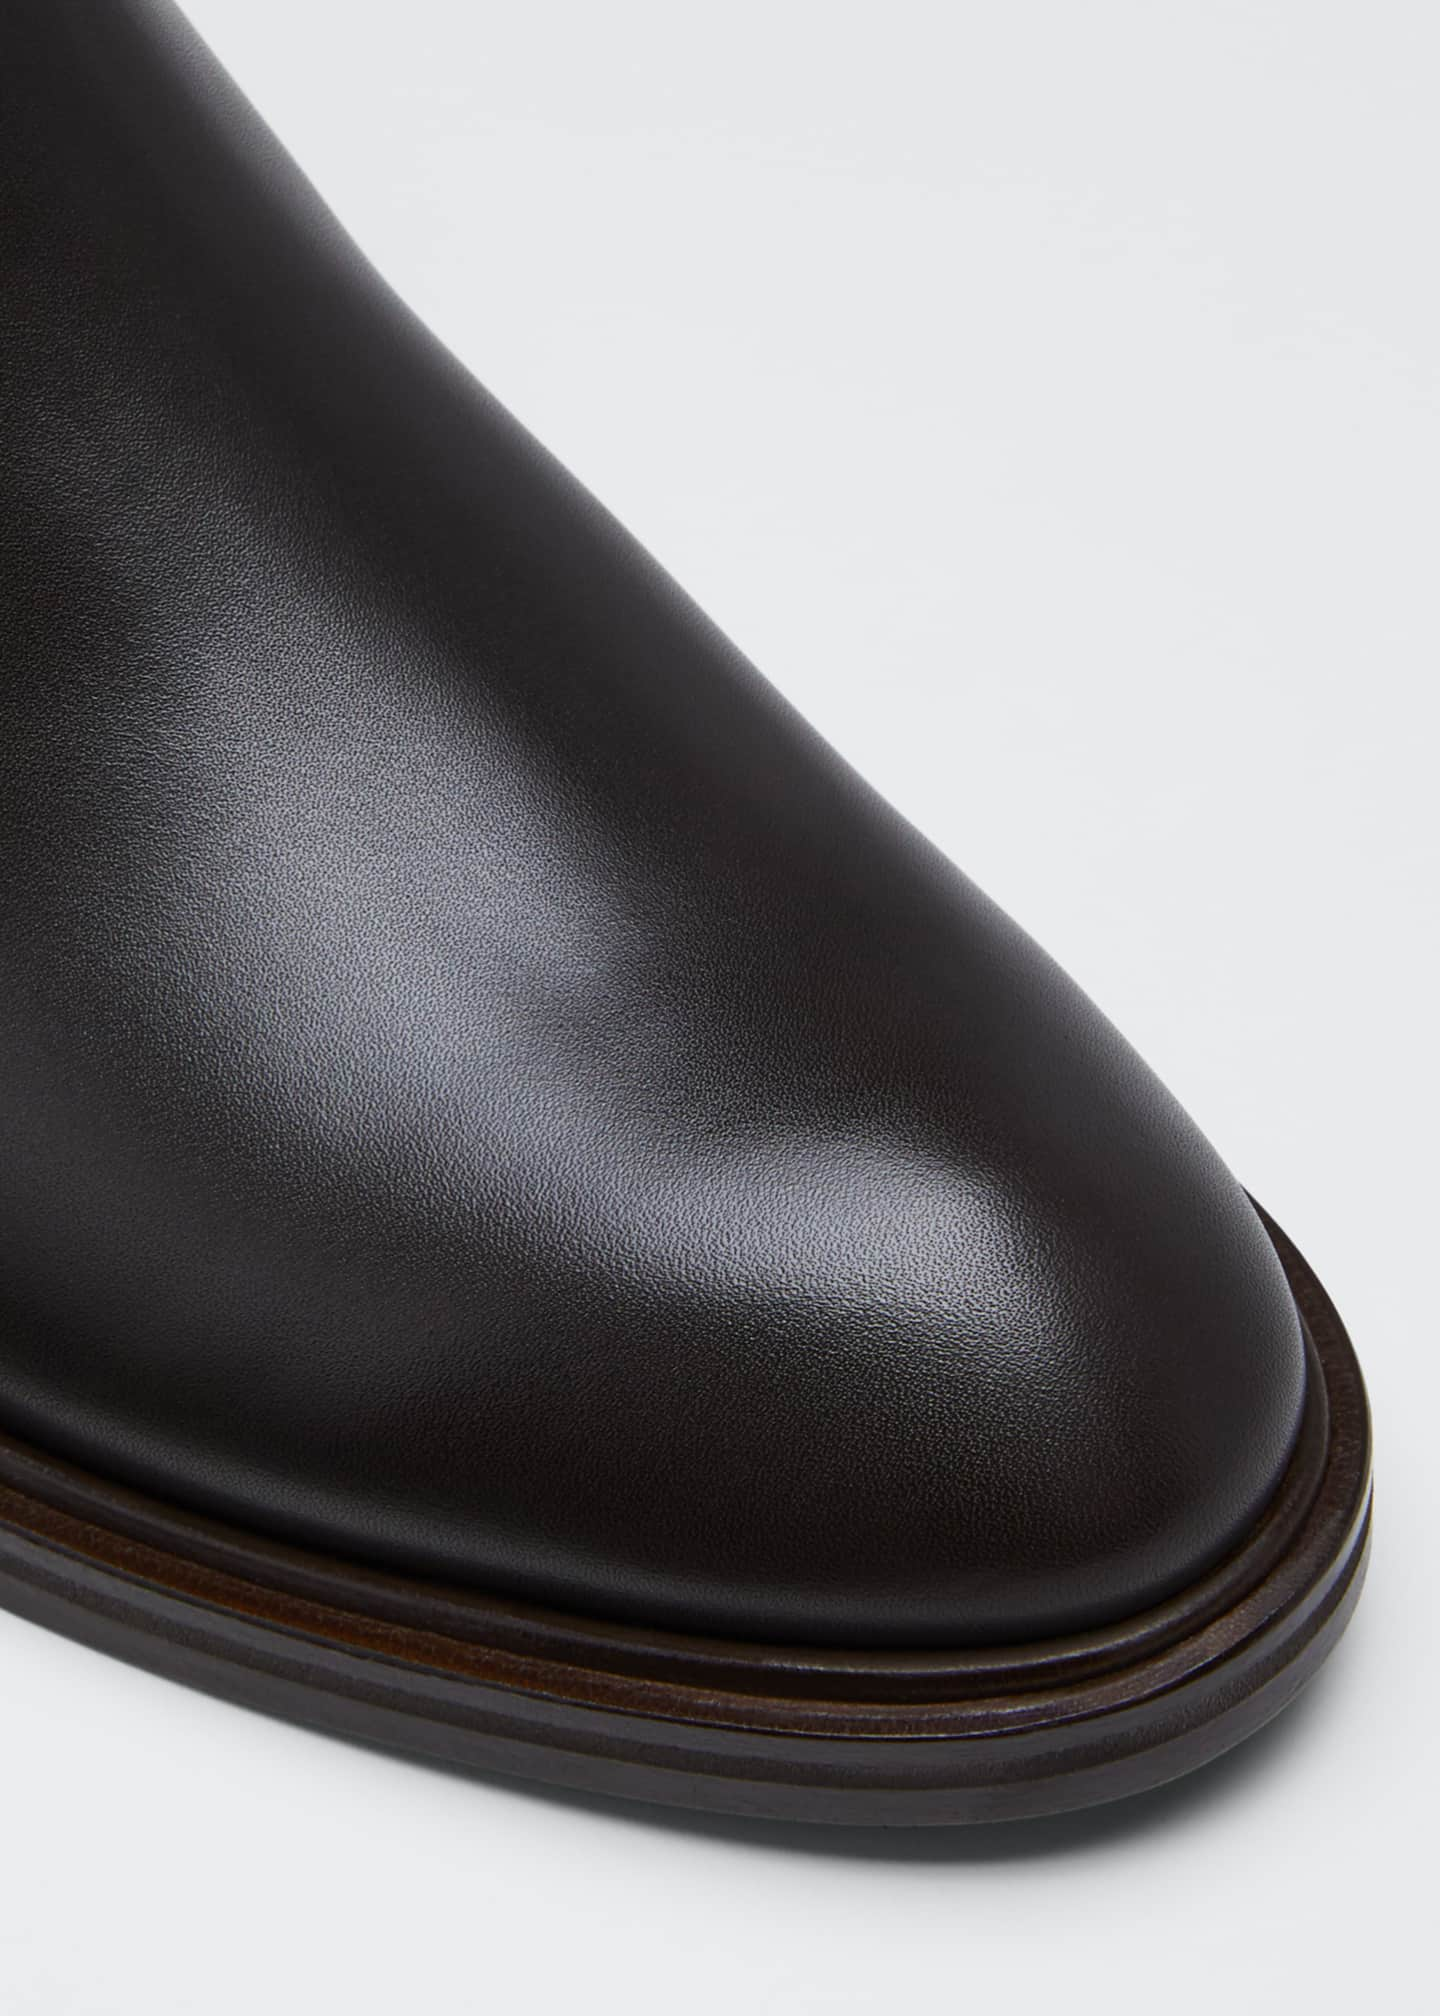 Image 5 of 5: Auckland Leather Chelsea Booties